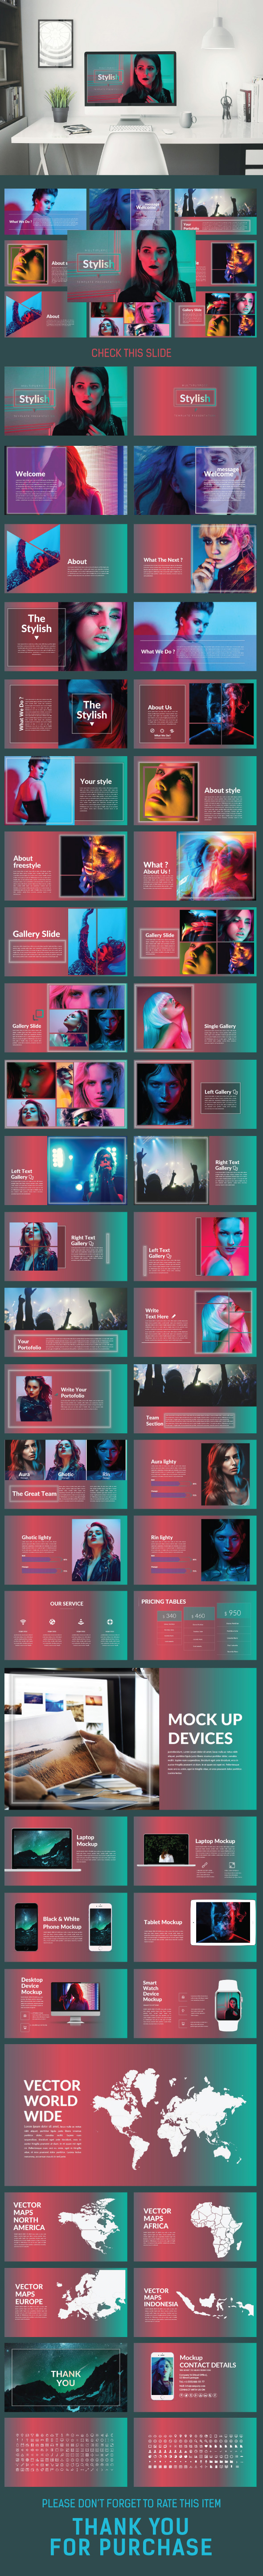 Stylish Power Point Template - Creative PowerPoint Templates